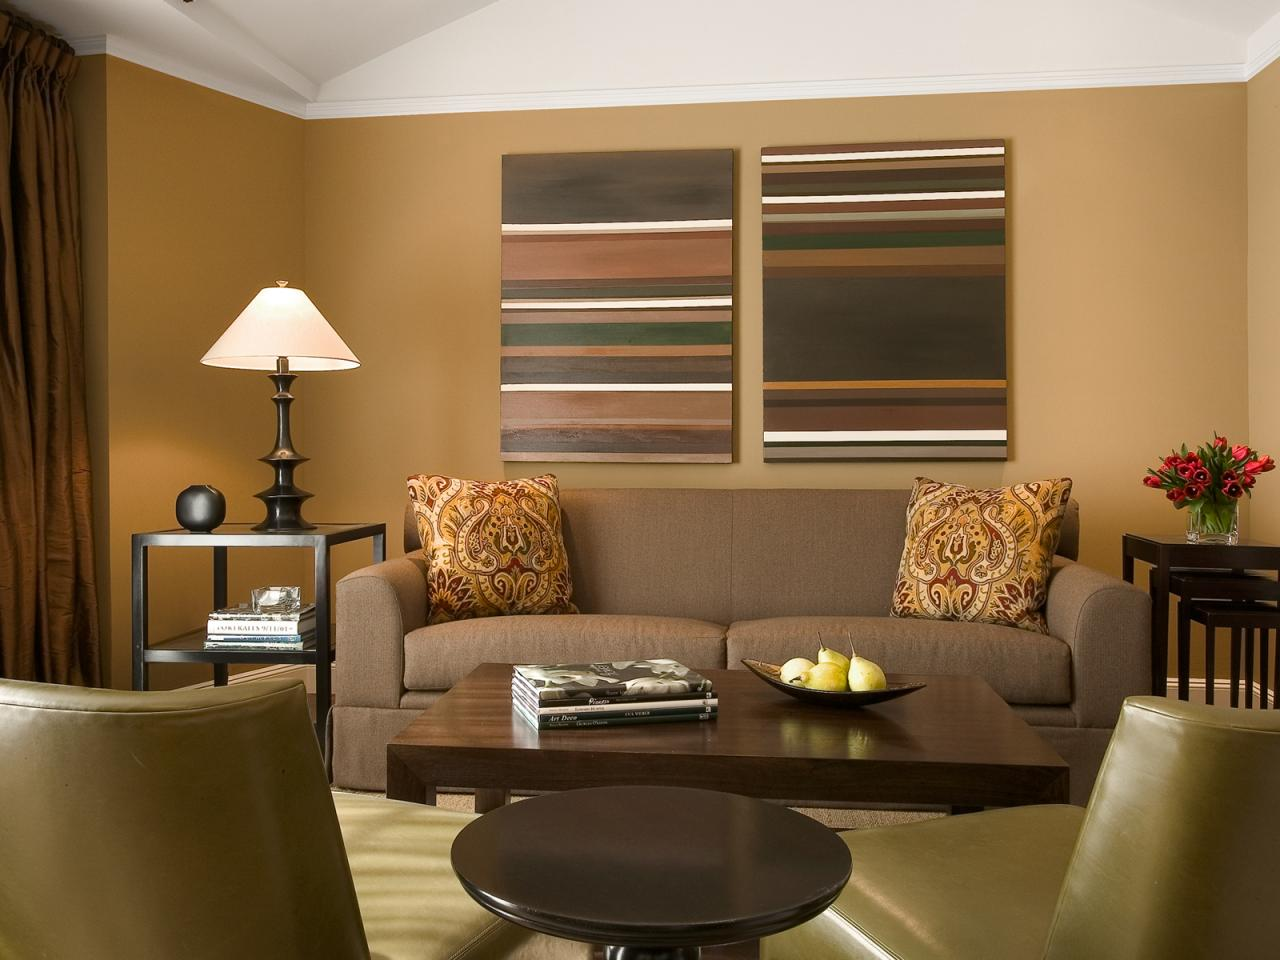 Ideal Colors For Living Room The Best Colors For Living Room White Green Blue And Gray Top